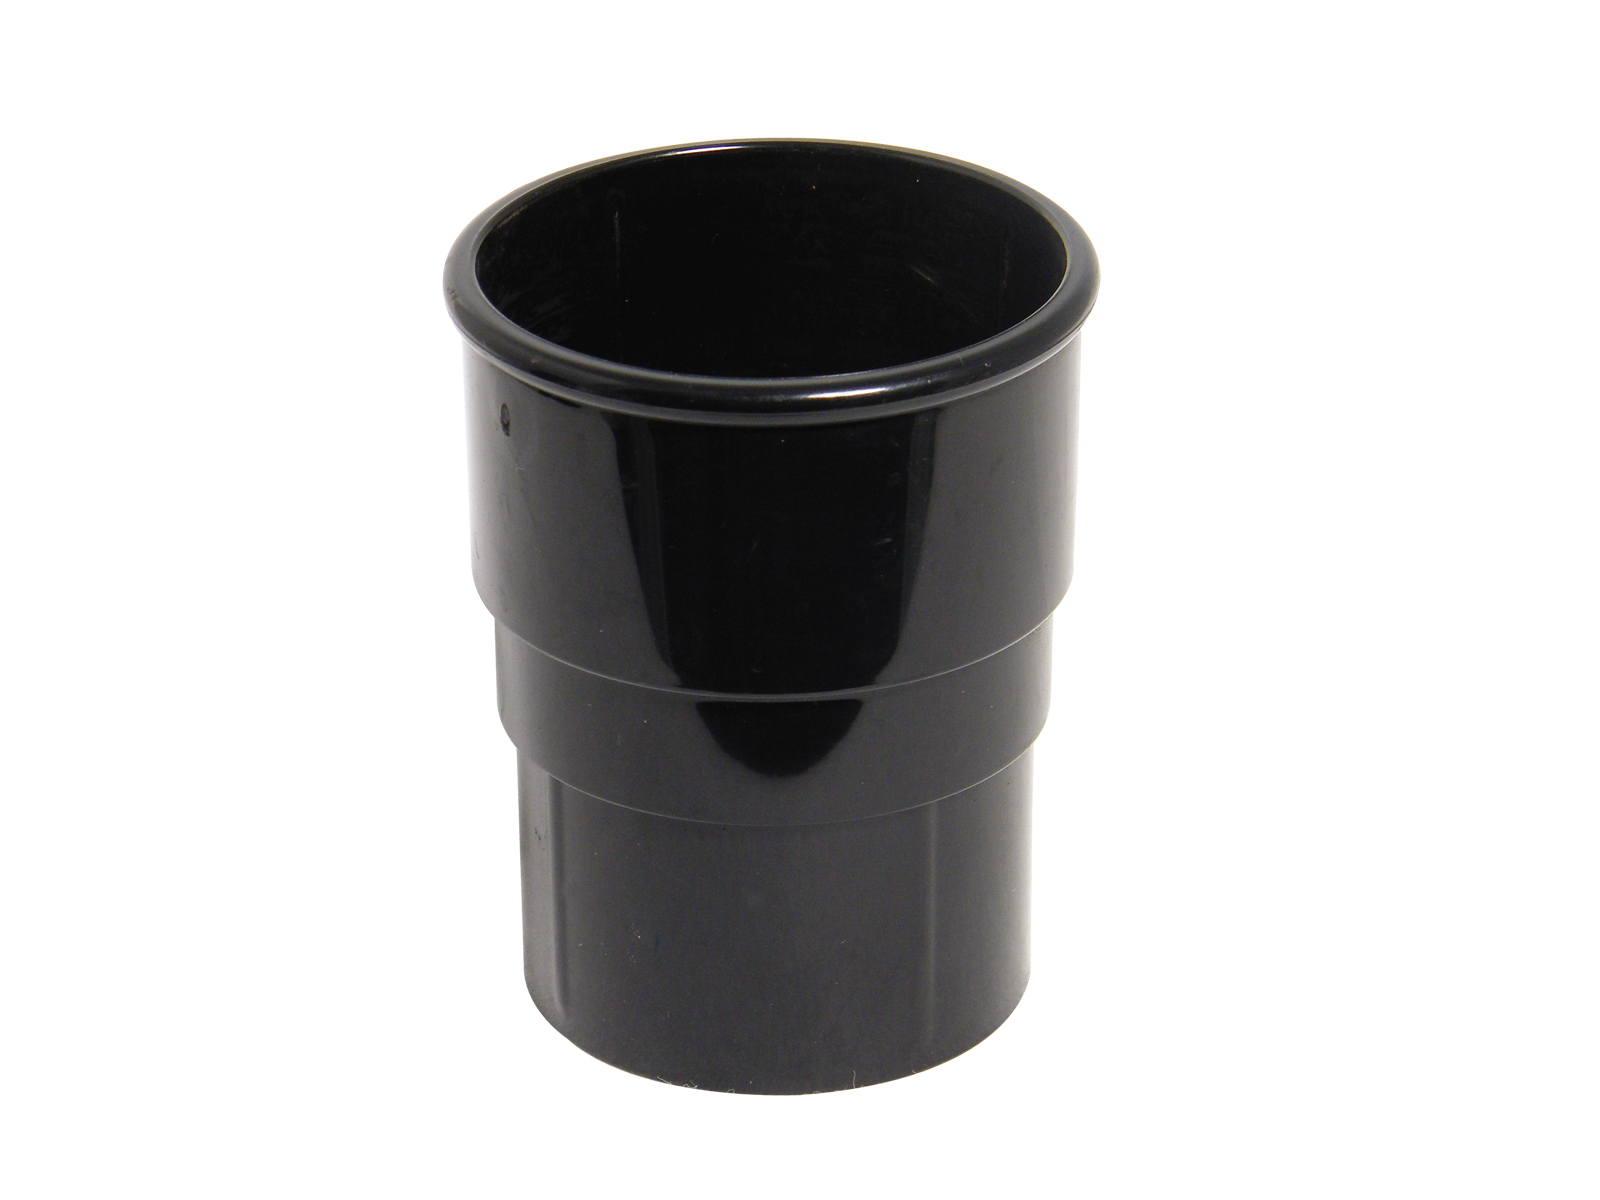 FLOPLAST RS1BL 68MM ROUND DOWNPIPE - PIPE SOCKET - BLACK